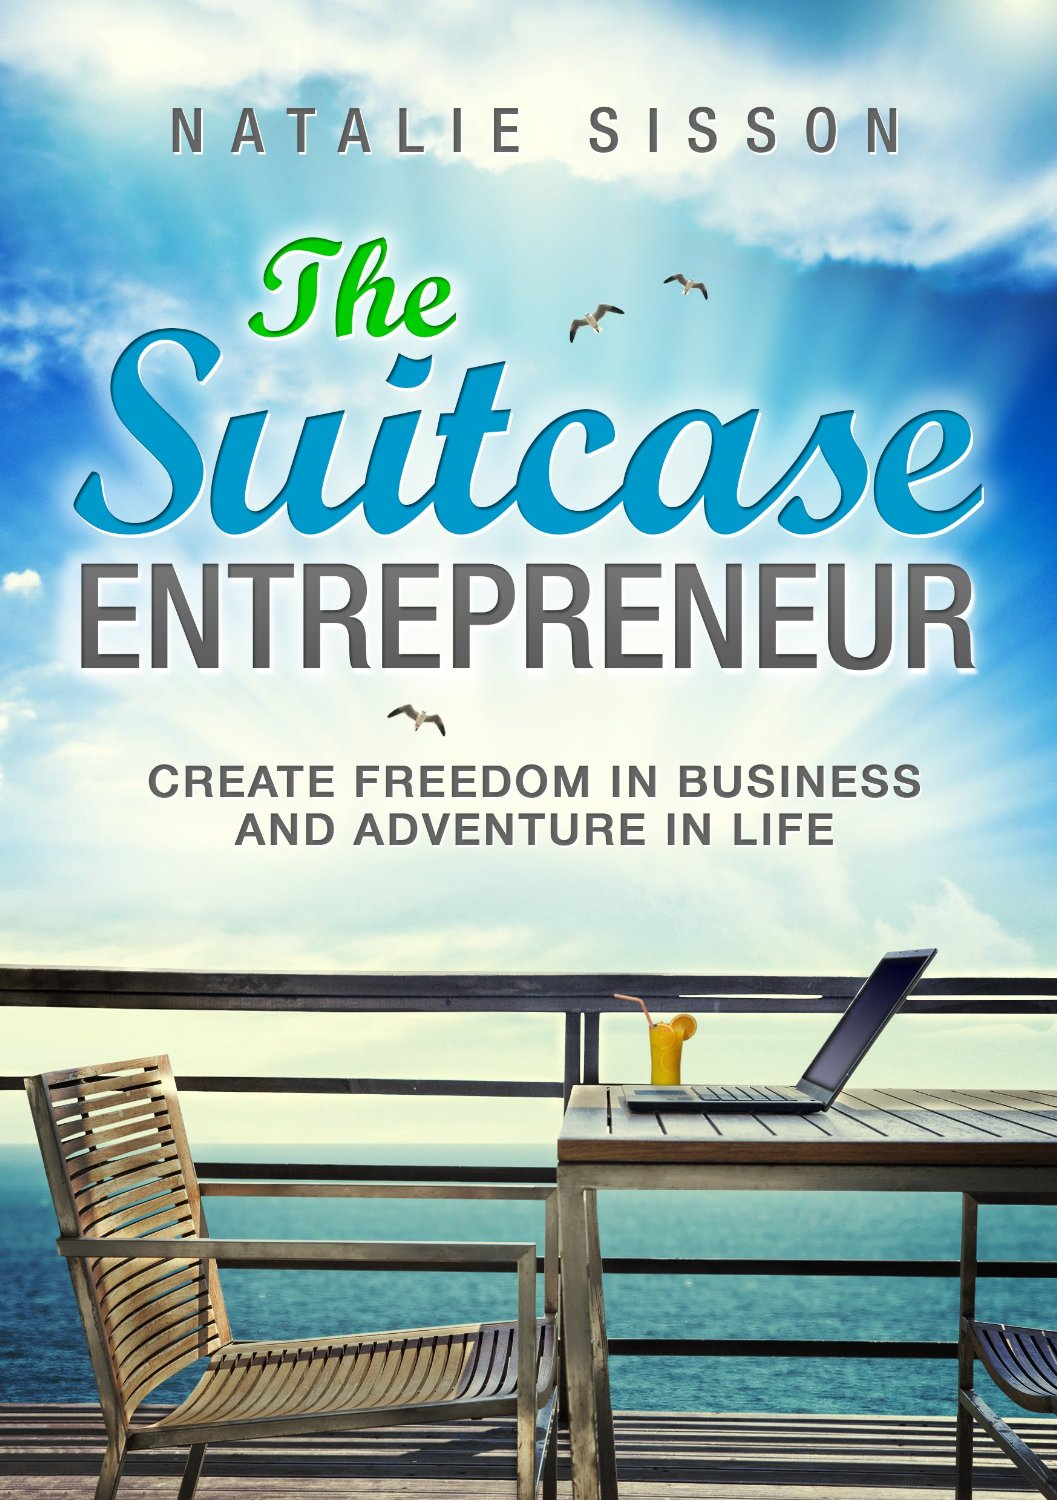 The Suitcase Entrepreneur - Natalie Sisson quit her high-paying job, moved to Canada, started a blog, and co-founded a technology company. After five years, she now runs a six-figure business from her laptop, while living out of a suitcase and teaching entrepreneurs worldwide how to build a business and lifestyle they love. The Suitcase Entrepreneur teaches readers how to package and sell their skills to earn enough money to be able to work and live anywhere, build a profitable online business, and live life on their own terms.